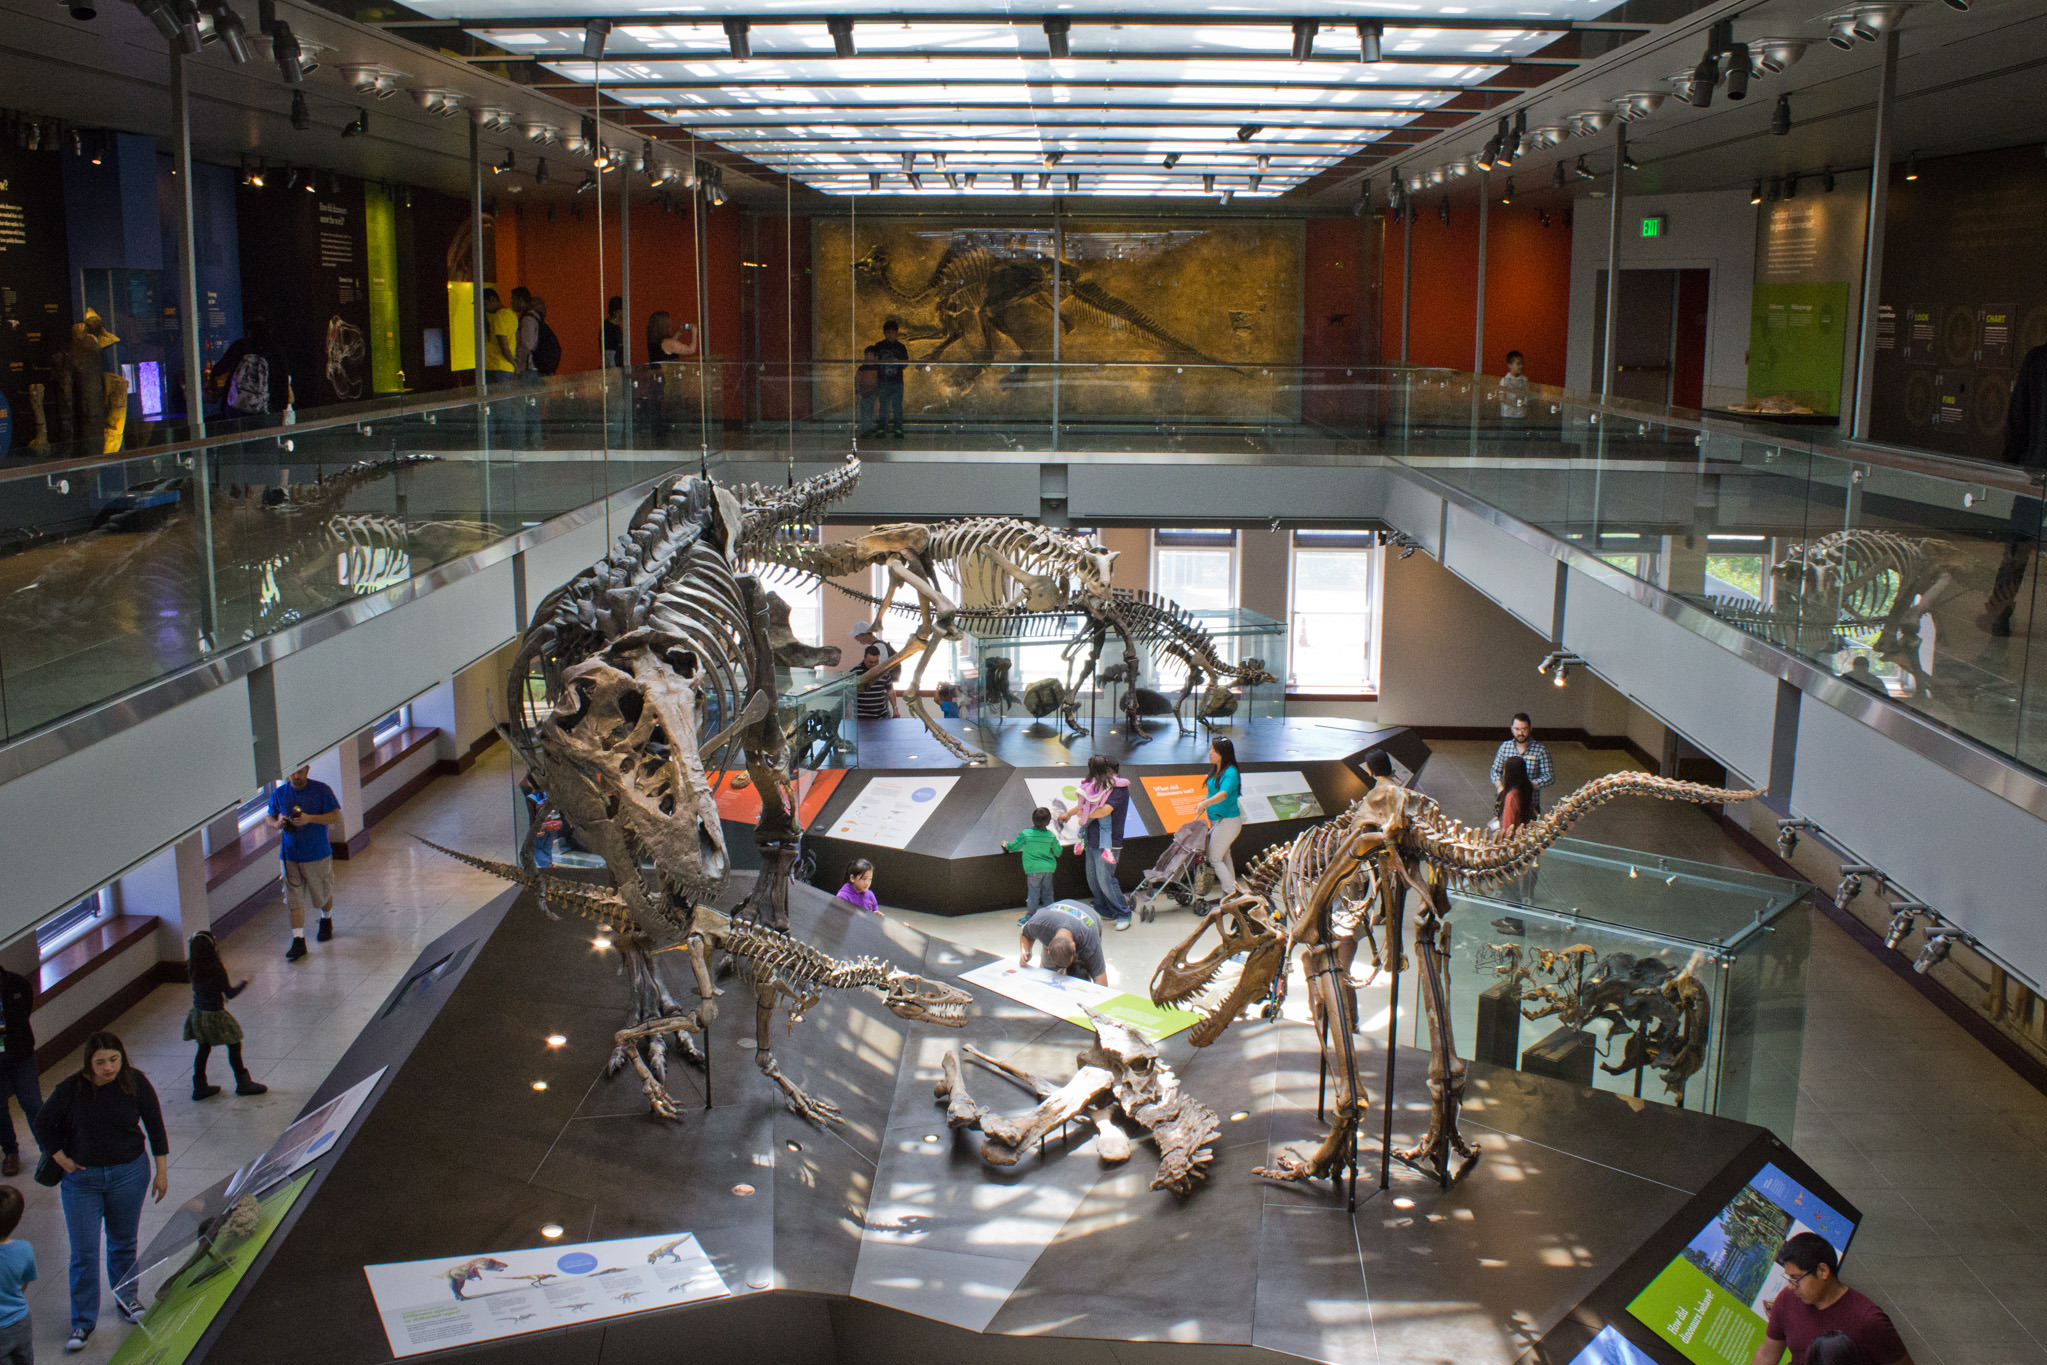 Natural History Museum of Los Angeles County (NHMLA): Located in Exposition Park, NHMLA has amassed one of the world's most extensive and valuable collections of natural and cultural history — more than 35 million objects, some as old as billion years.